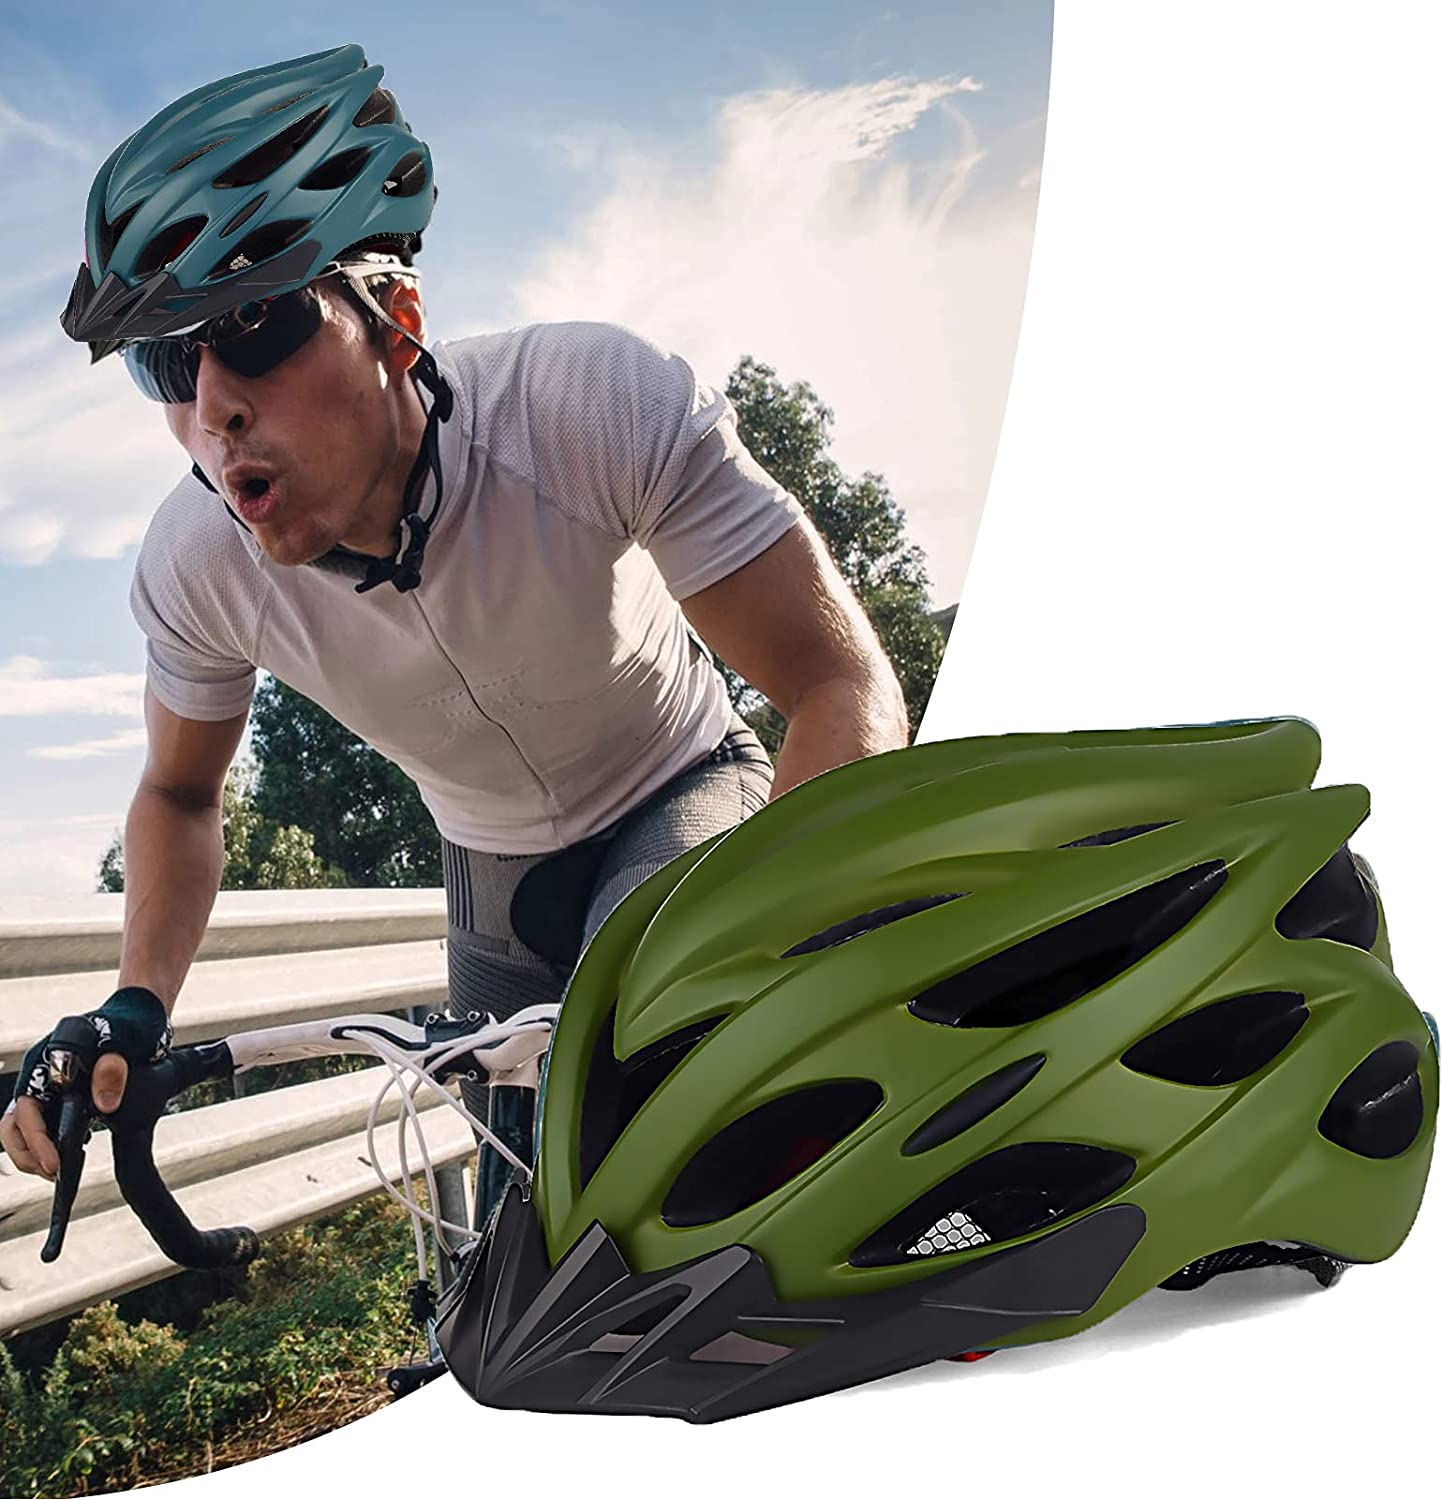 hsj Bicycle Helmet Beauty products Unisex Adult Ultra-Cheap Deals Ultra-Light Mountain Breathable